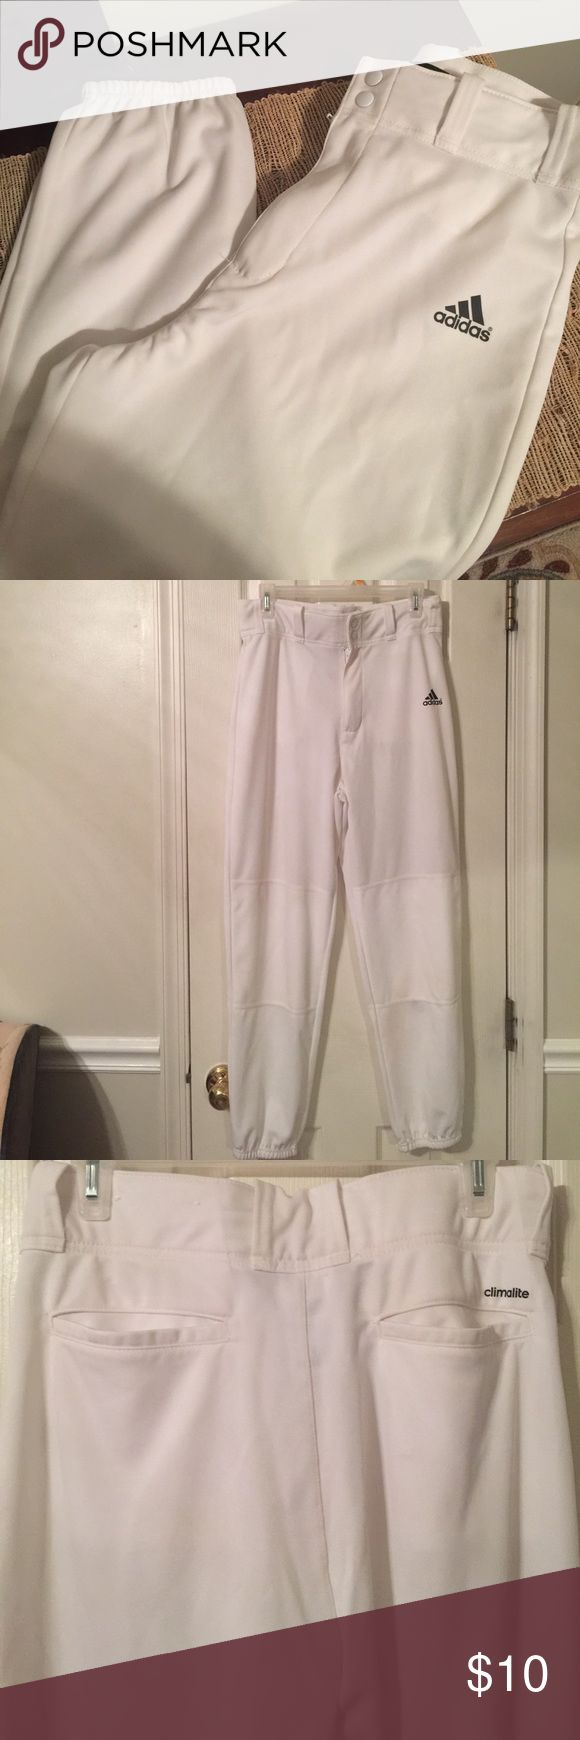 Adidas Baseball Pants Men's size medium.  White with black lettering.  Only worn once, great condition.  Initials are written in marker on the tag (see pic).  Double snap in front & 2 rear pockets.  One ver light stain on bottom left leg (see pic). adidas Pants